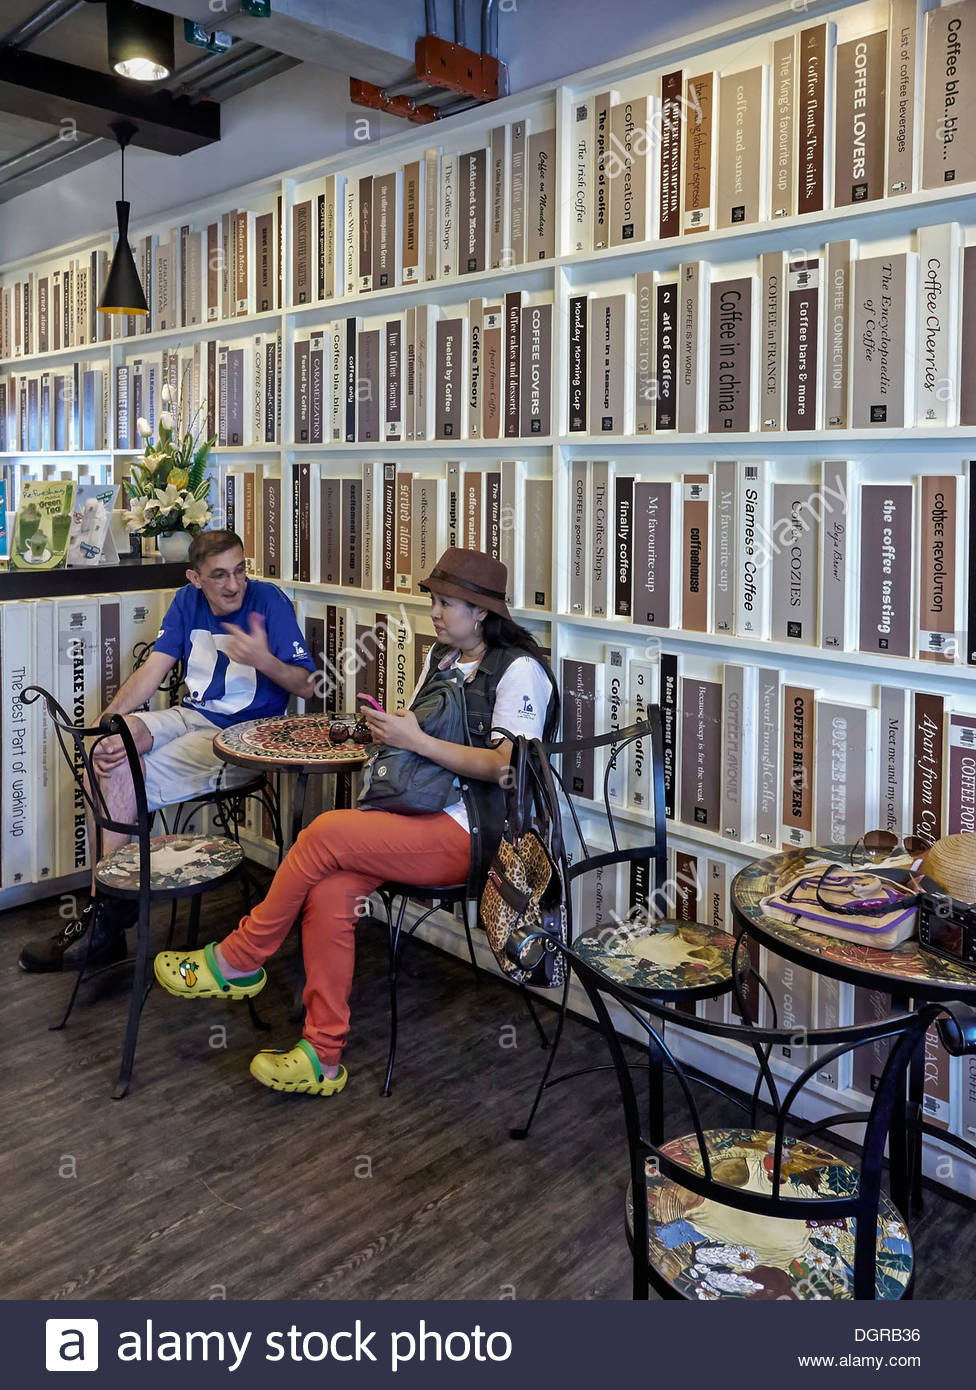 modern bistro styled coffee shop designed in book shop style with rh alamy com